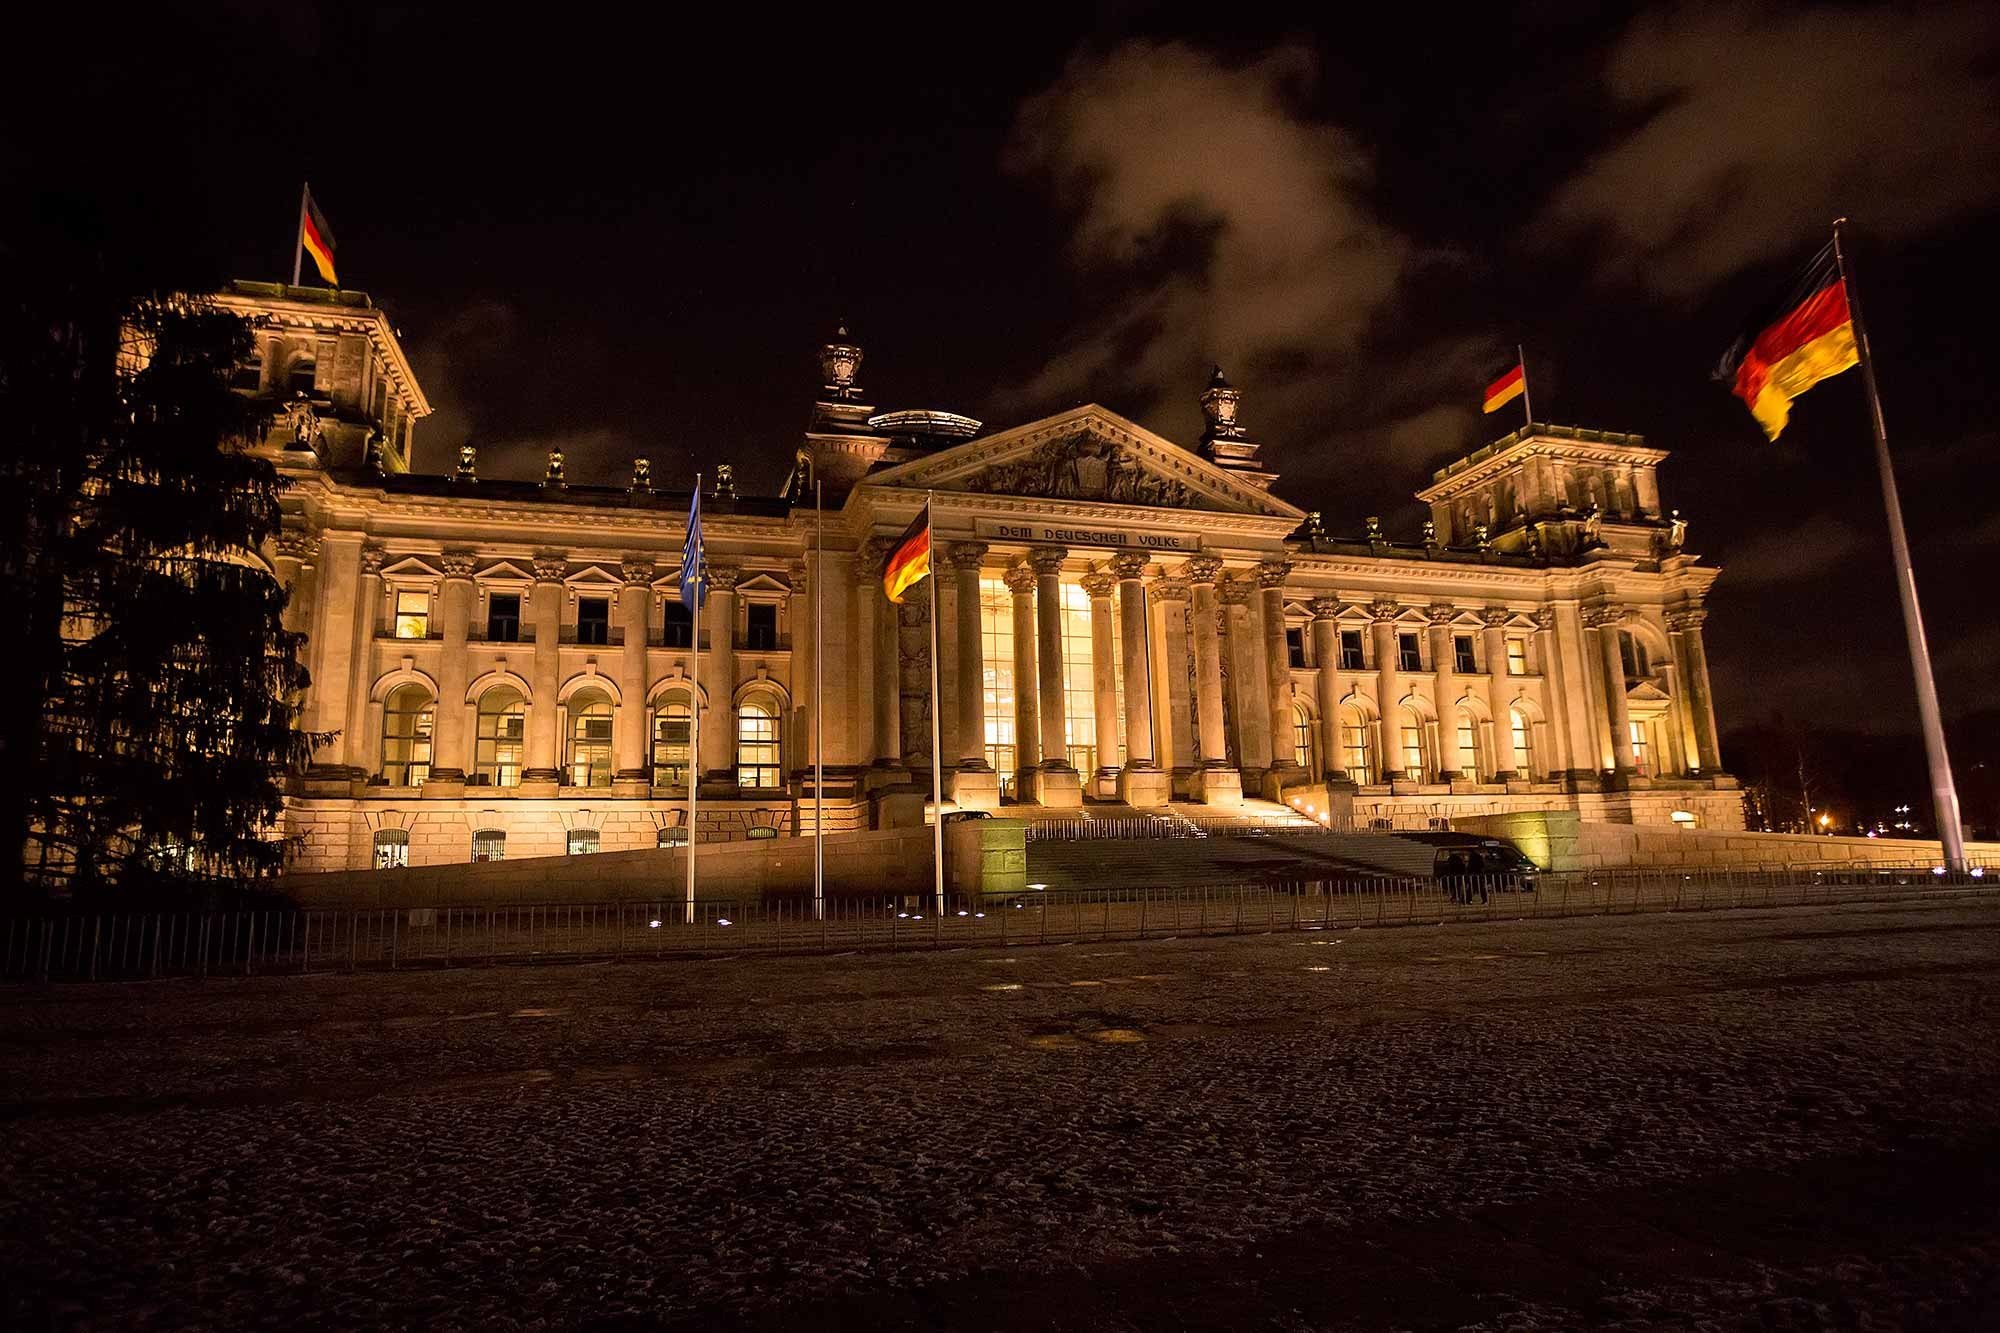 The Reichstag Building in Berlin. © Ulli Maier & Nisa Maier